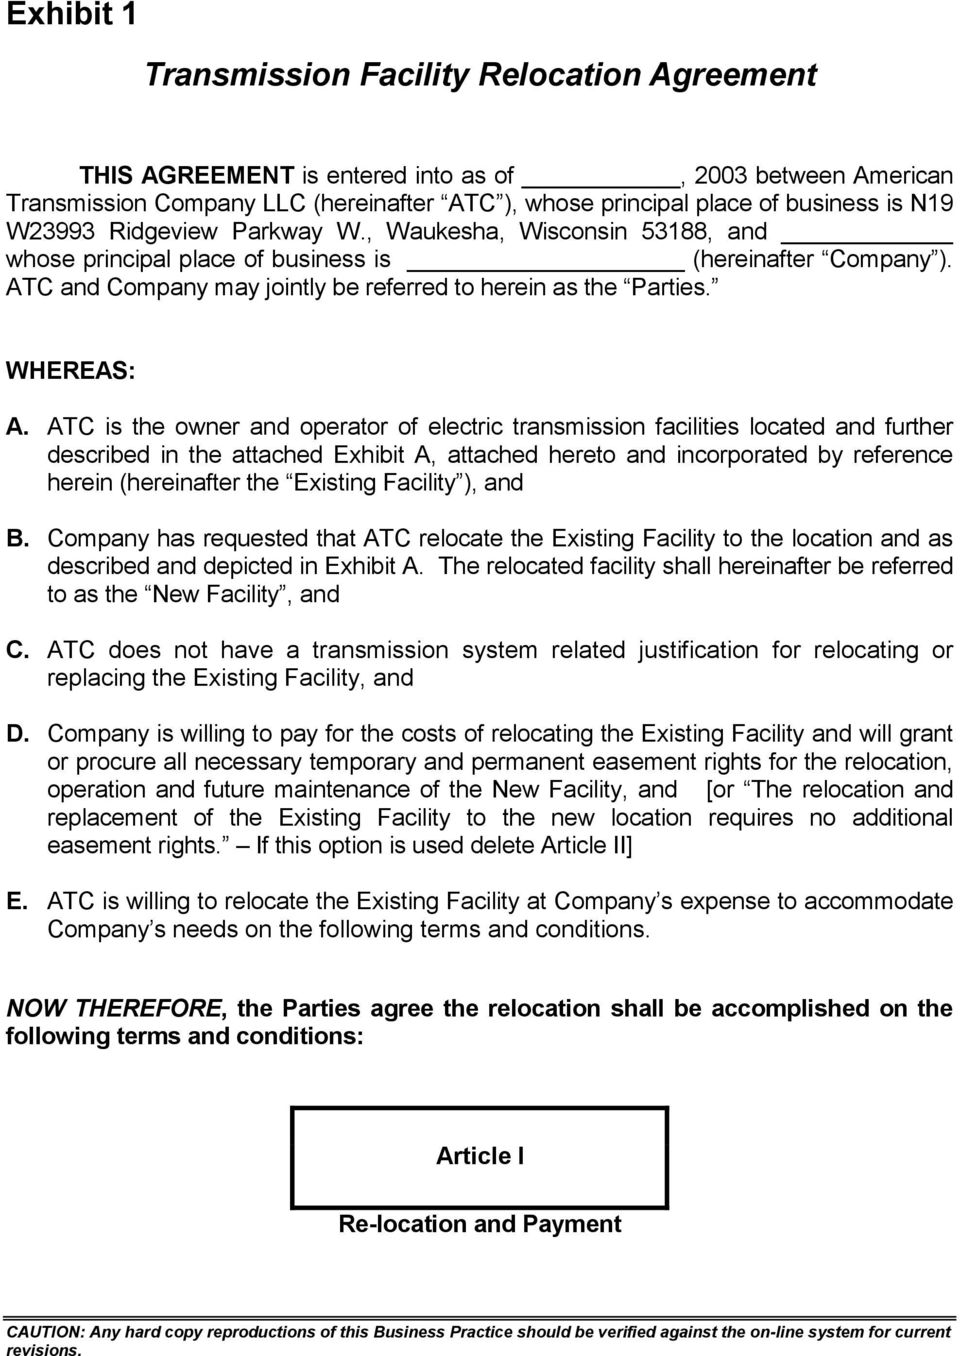 ATC is the owner and operator of electric transmission facilities located and further described in the attached Exhibit A, attached hereto and incorporated by reference herein (hereinafter the